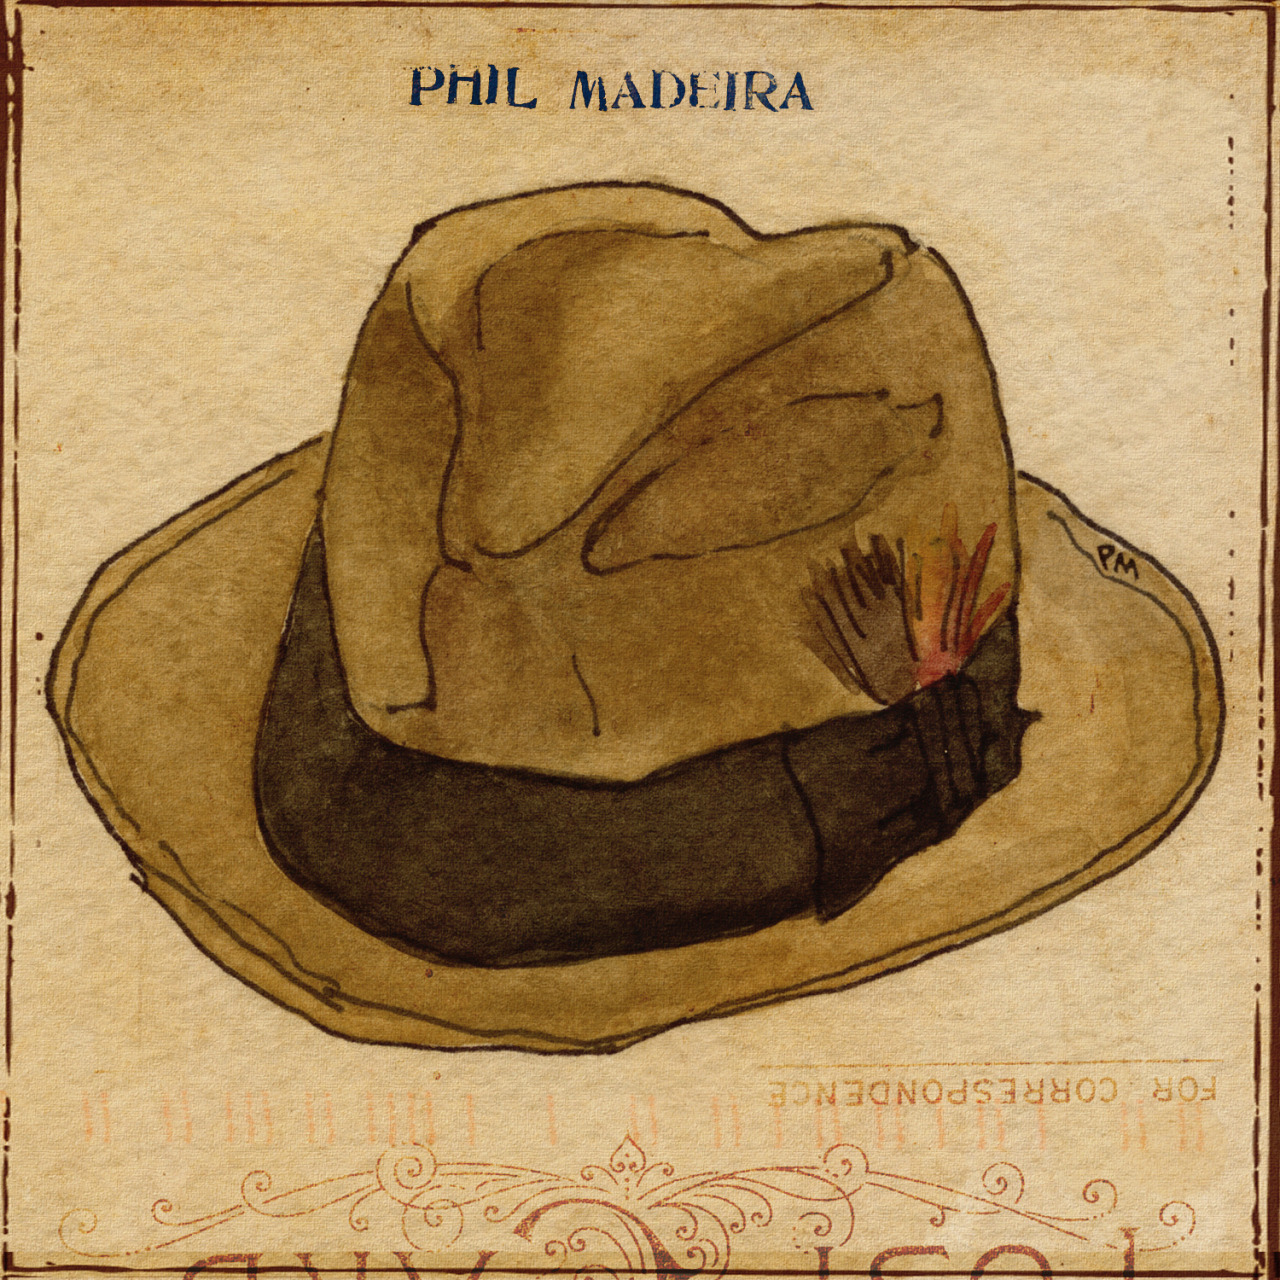 Back to the roots. Phil Madeira is the renaissance man of Nashville. A multi-intrumentalist who's worked with everyone in town and written songs for artists ranging from Garth Brooks to Keb' Mo', Madeira is turning now to a new solo recording. Having sucessfully funded a collaborative album on Kickstarter last year, Madiera is reaching out to his backers once again to fund an even more personal project. This sweet slice of American roots music is our Project of the Day.